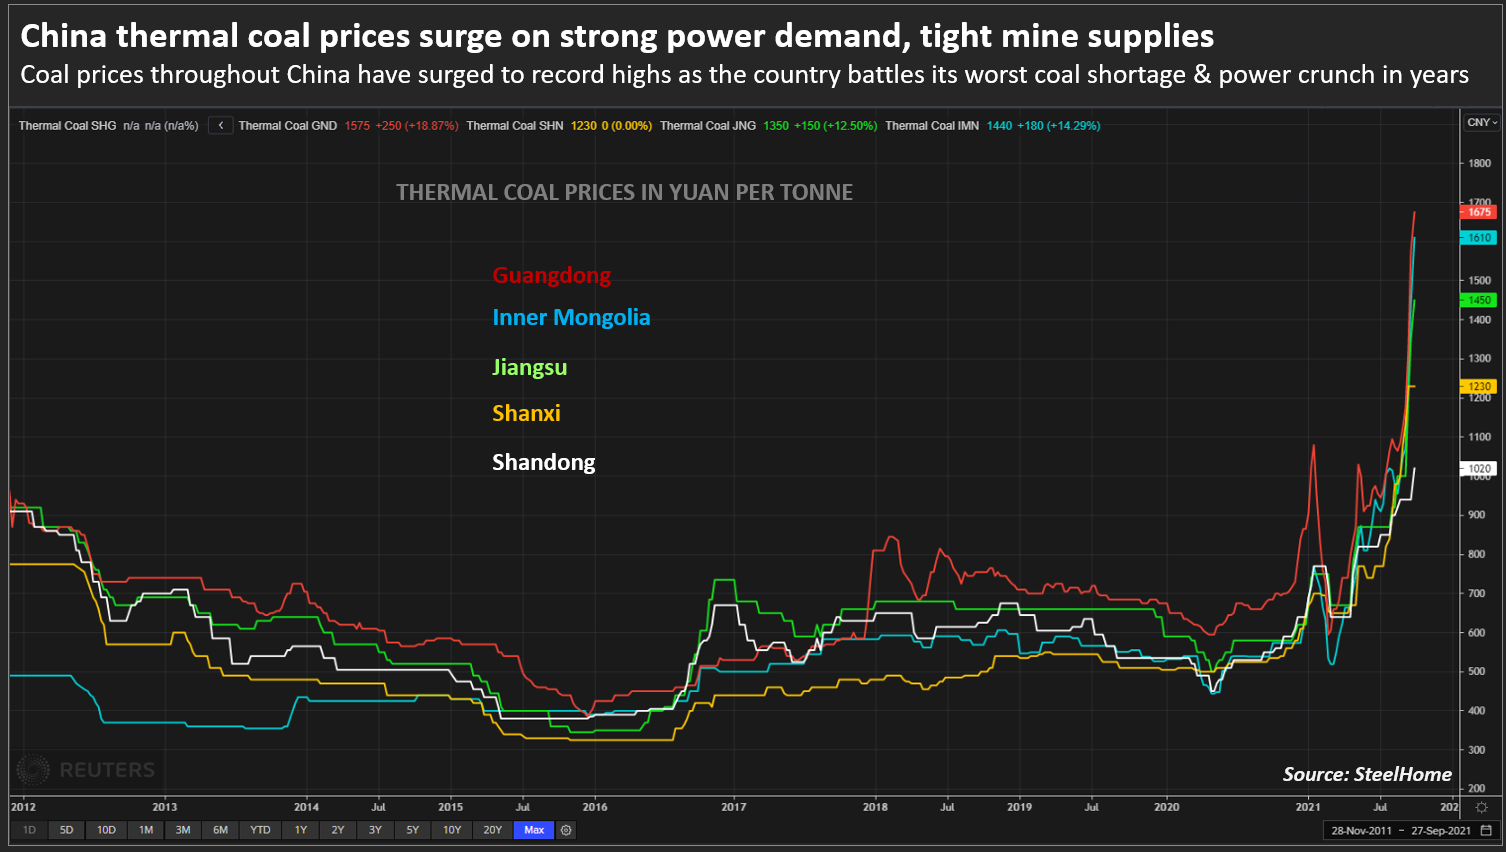 China Thermal Coal Prices Rise Due To Strong Demand For Electricity And Squeezed Mining Supply